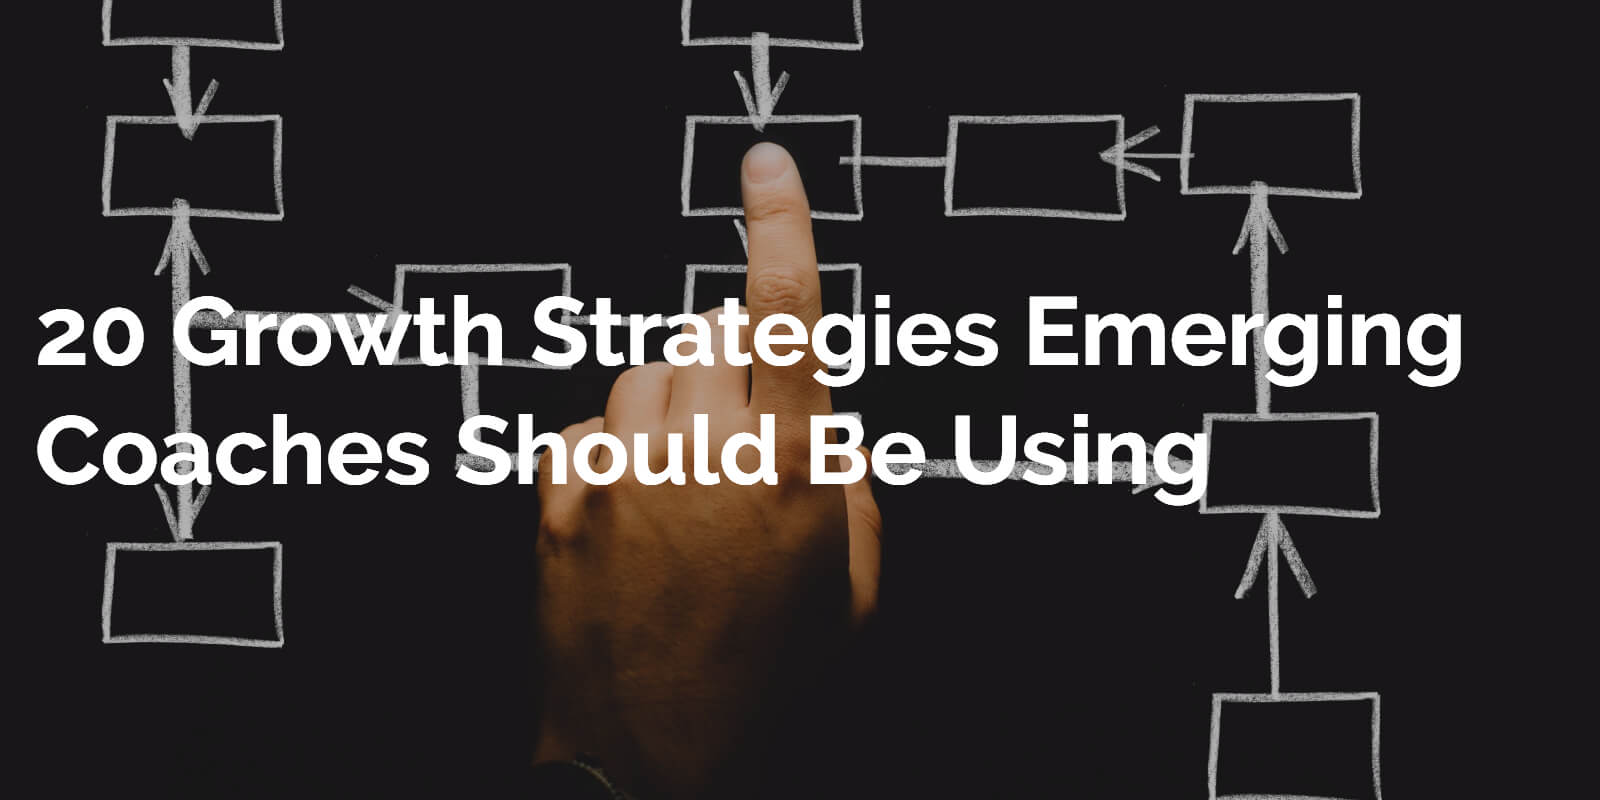 20 Growth Strategies Emerging Coaches Should Be Using